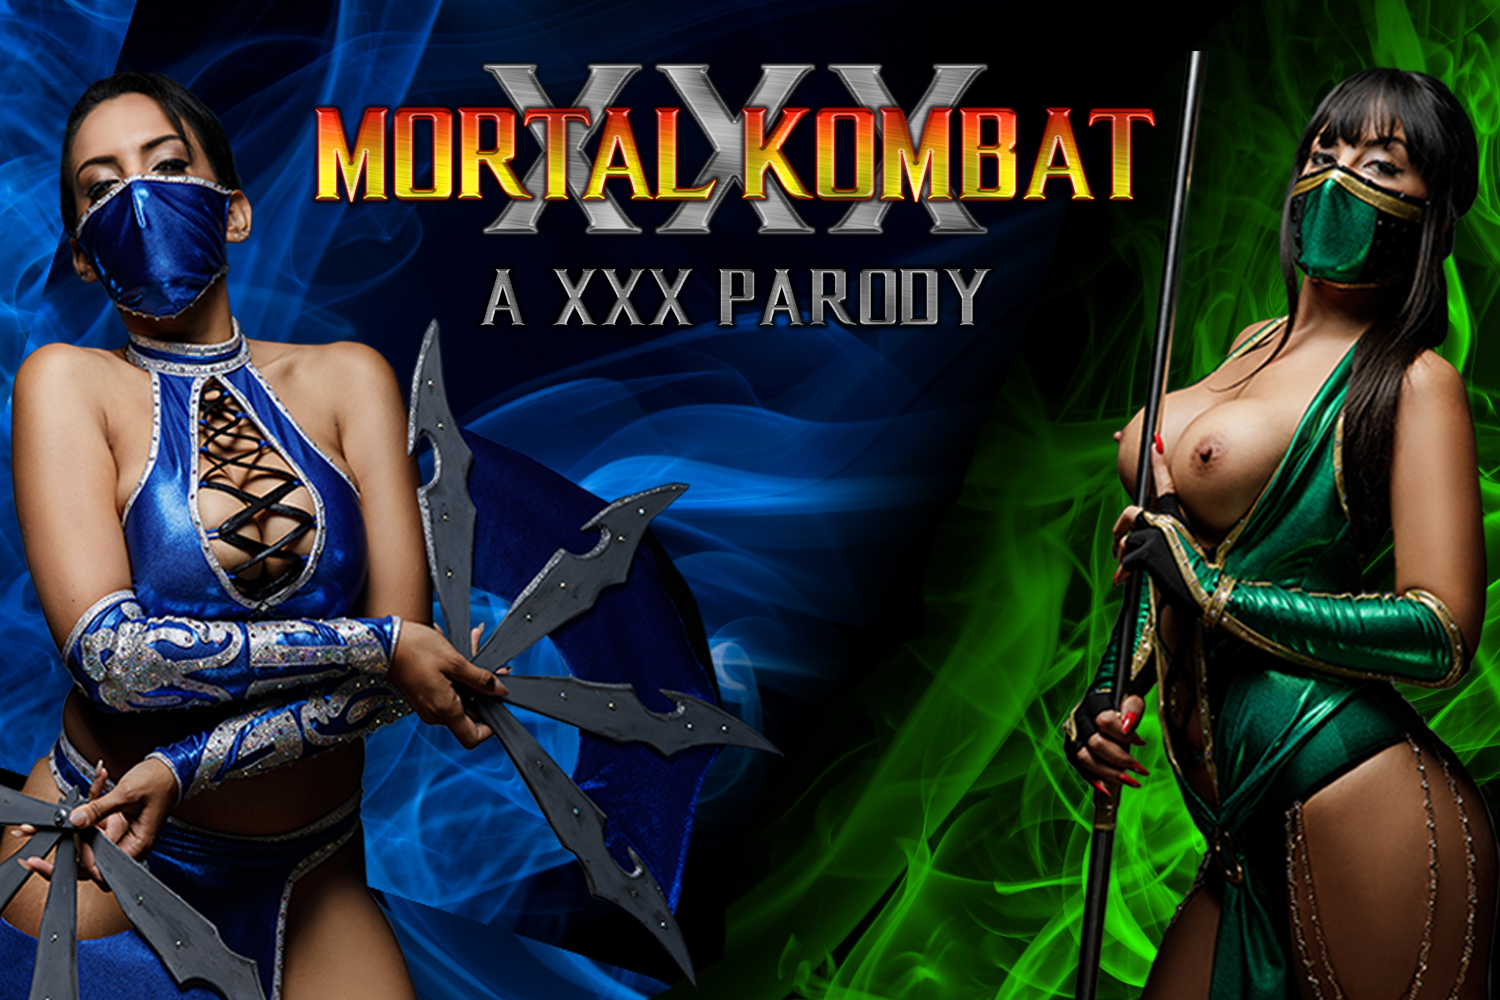 Mortal Kombat Virtual Reality Porn Cosplay | MobileVRXXX